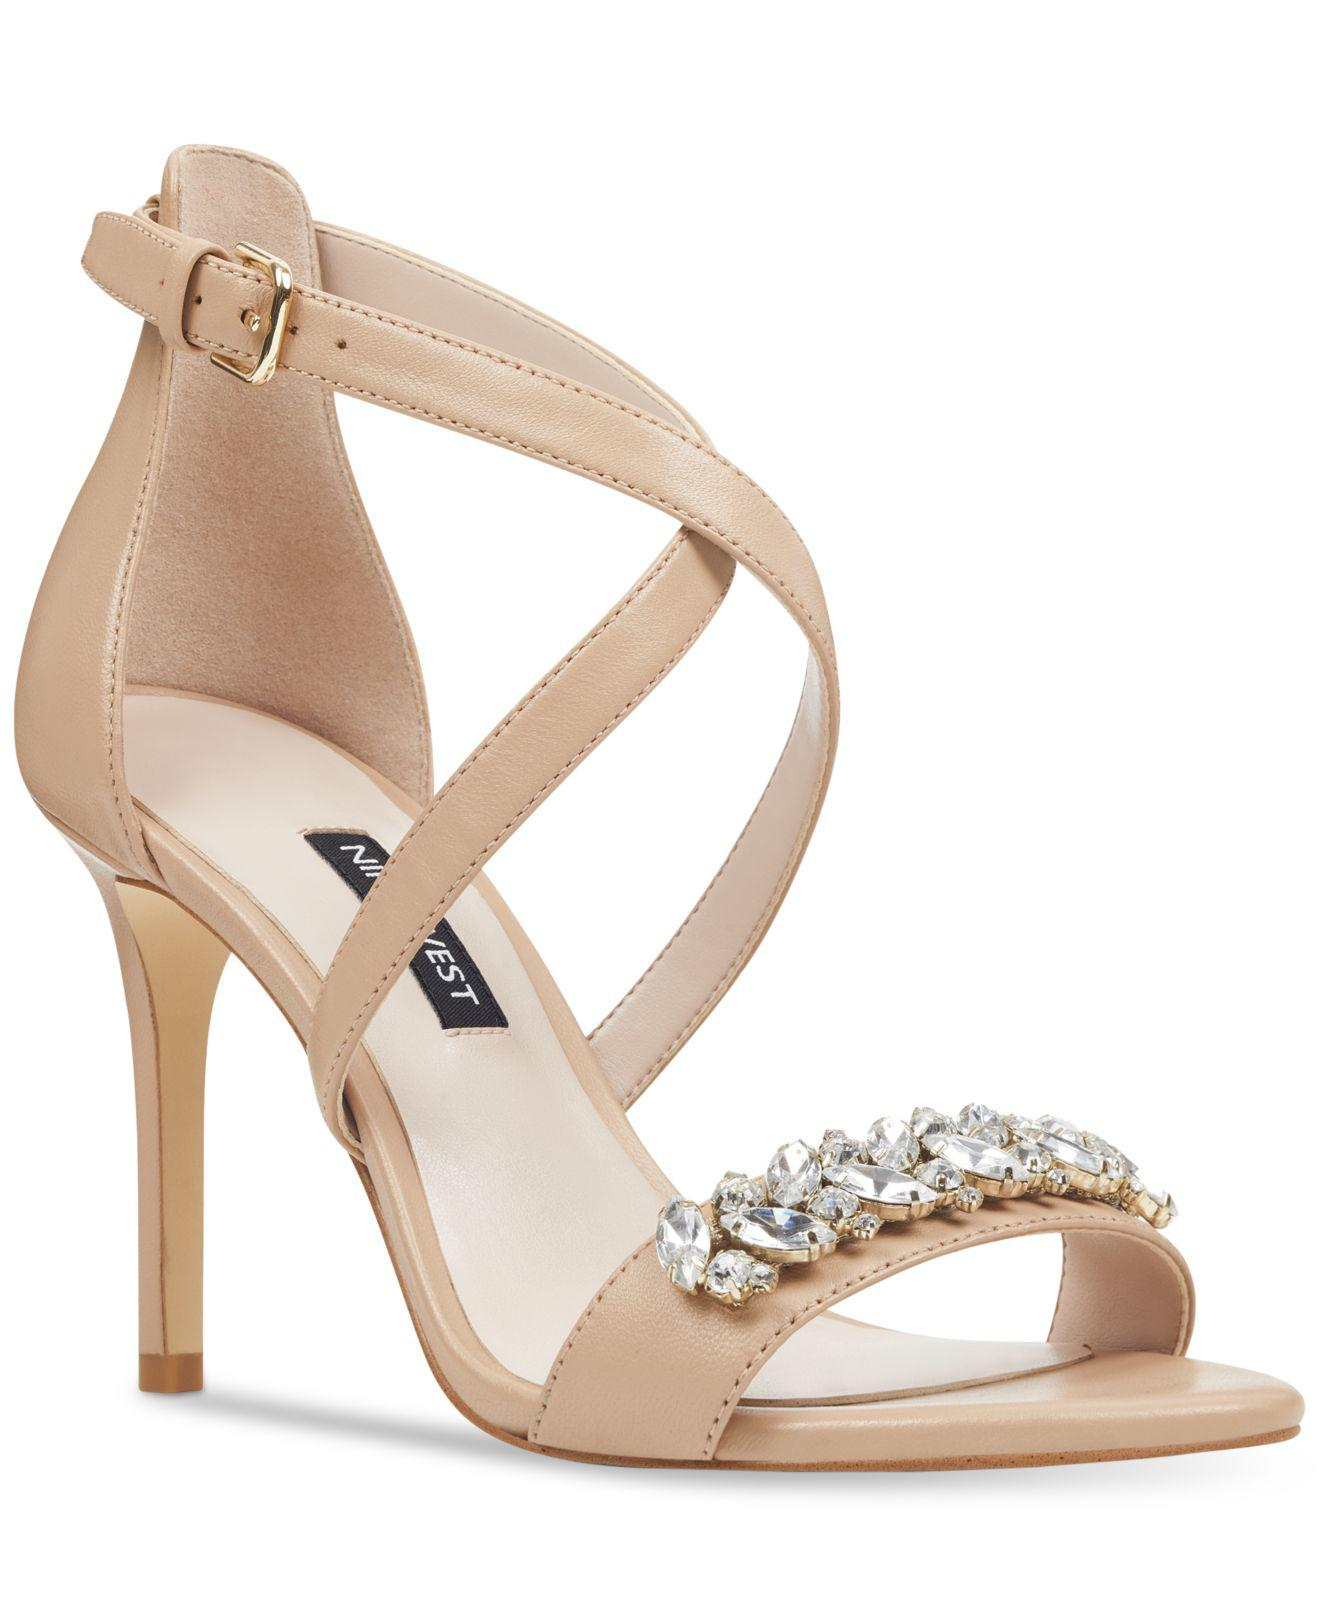 fed5768dd9d Lyst - Nine West Mikhaila Evening Sandals in Natural